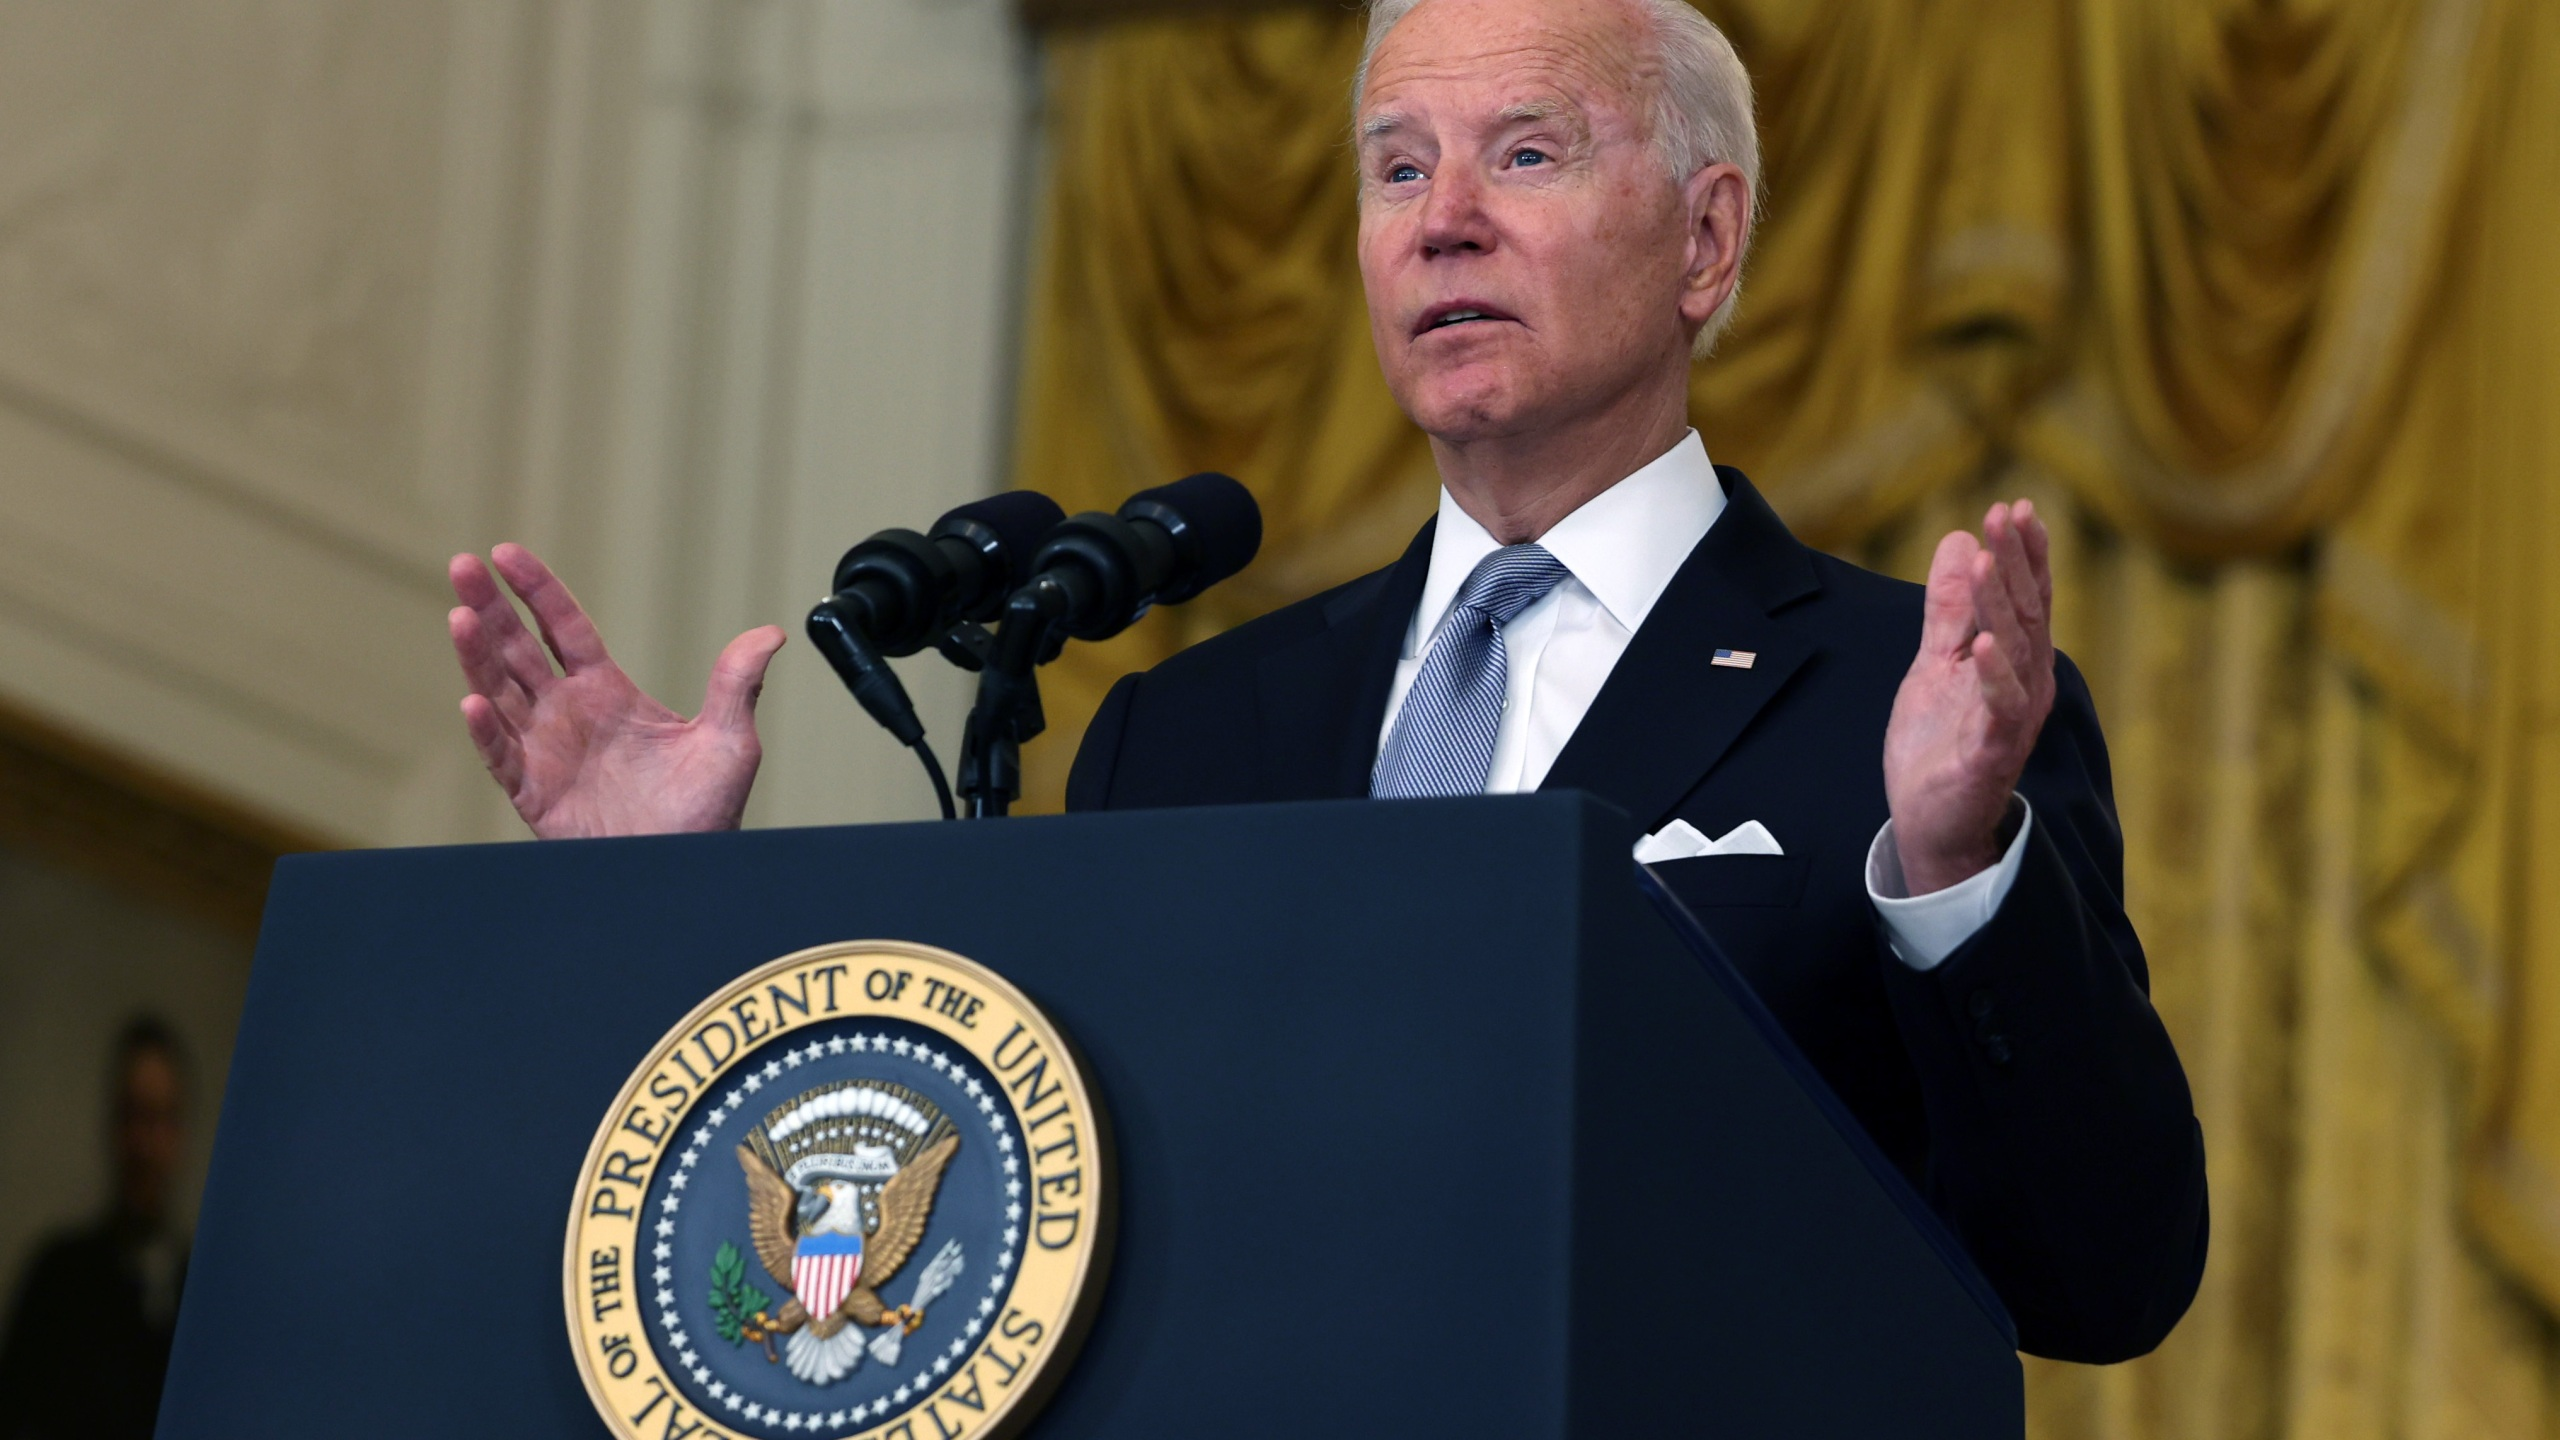 President Joe Biden delivers remarks on the worsening crisis in Afghanistan from the East Room of the White House Aug. 16, 2021. (Anna Moneymaker/Getty Images)